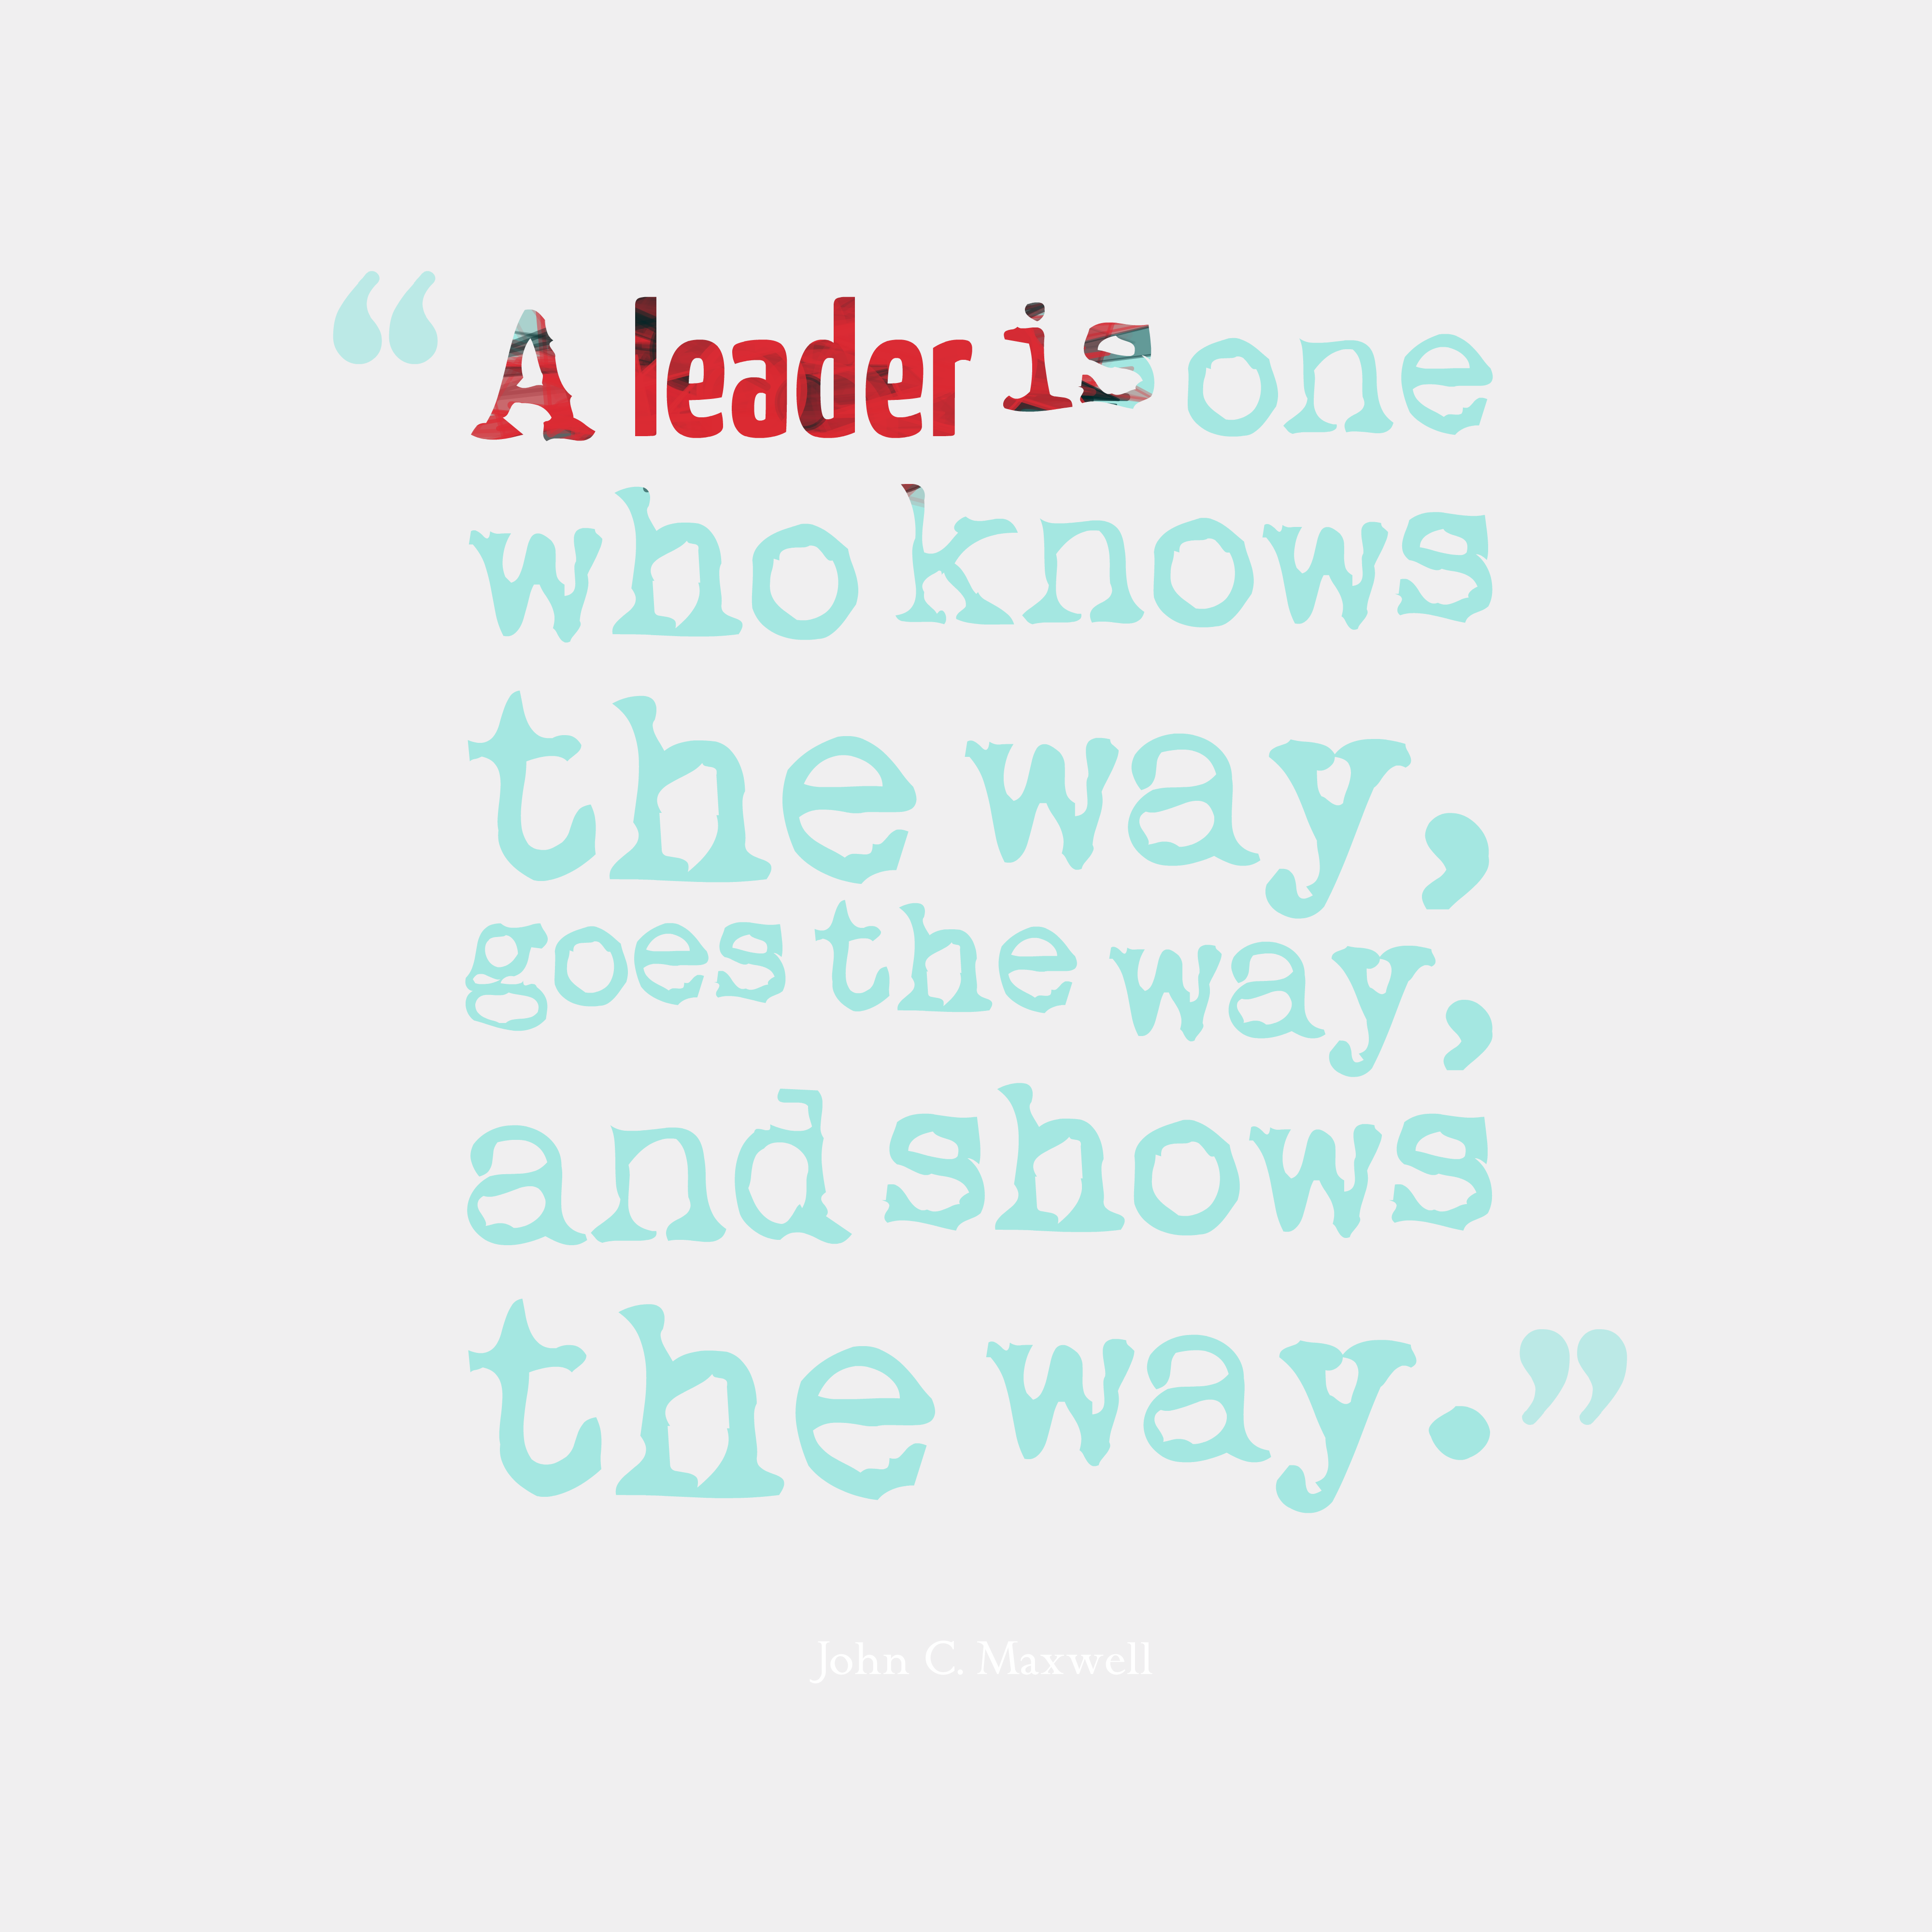 Quotes image of A leader is one who knows the way, goes the way, and shows the way.